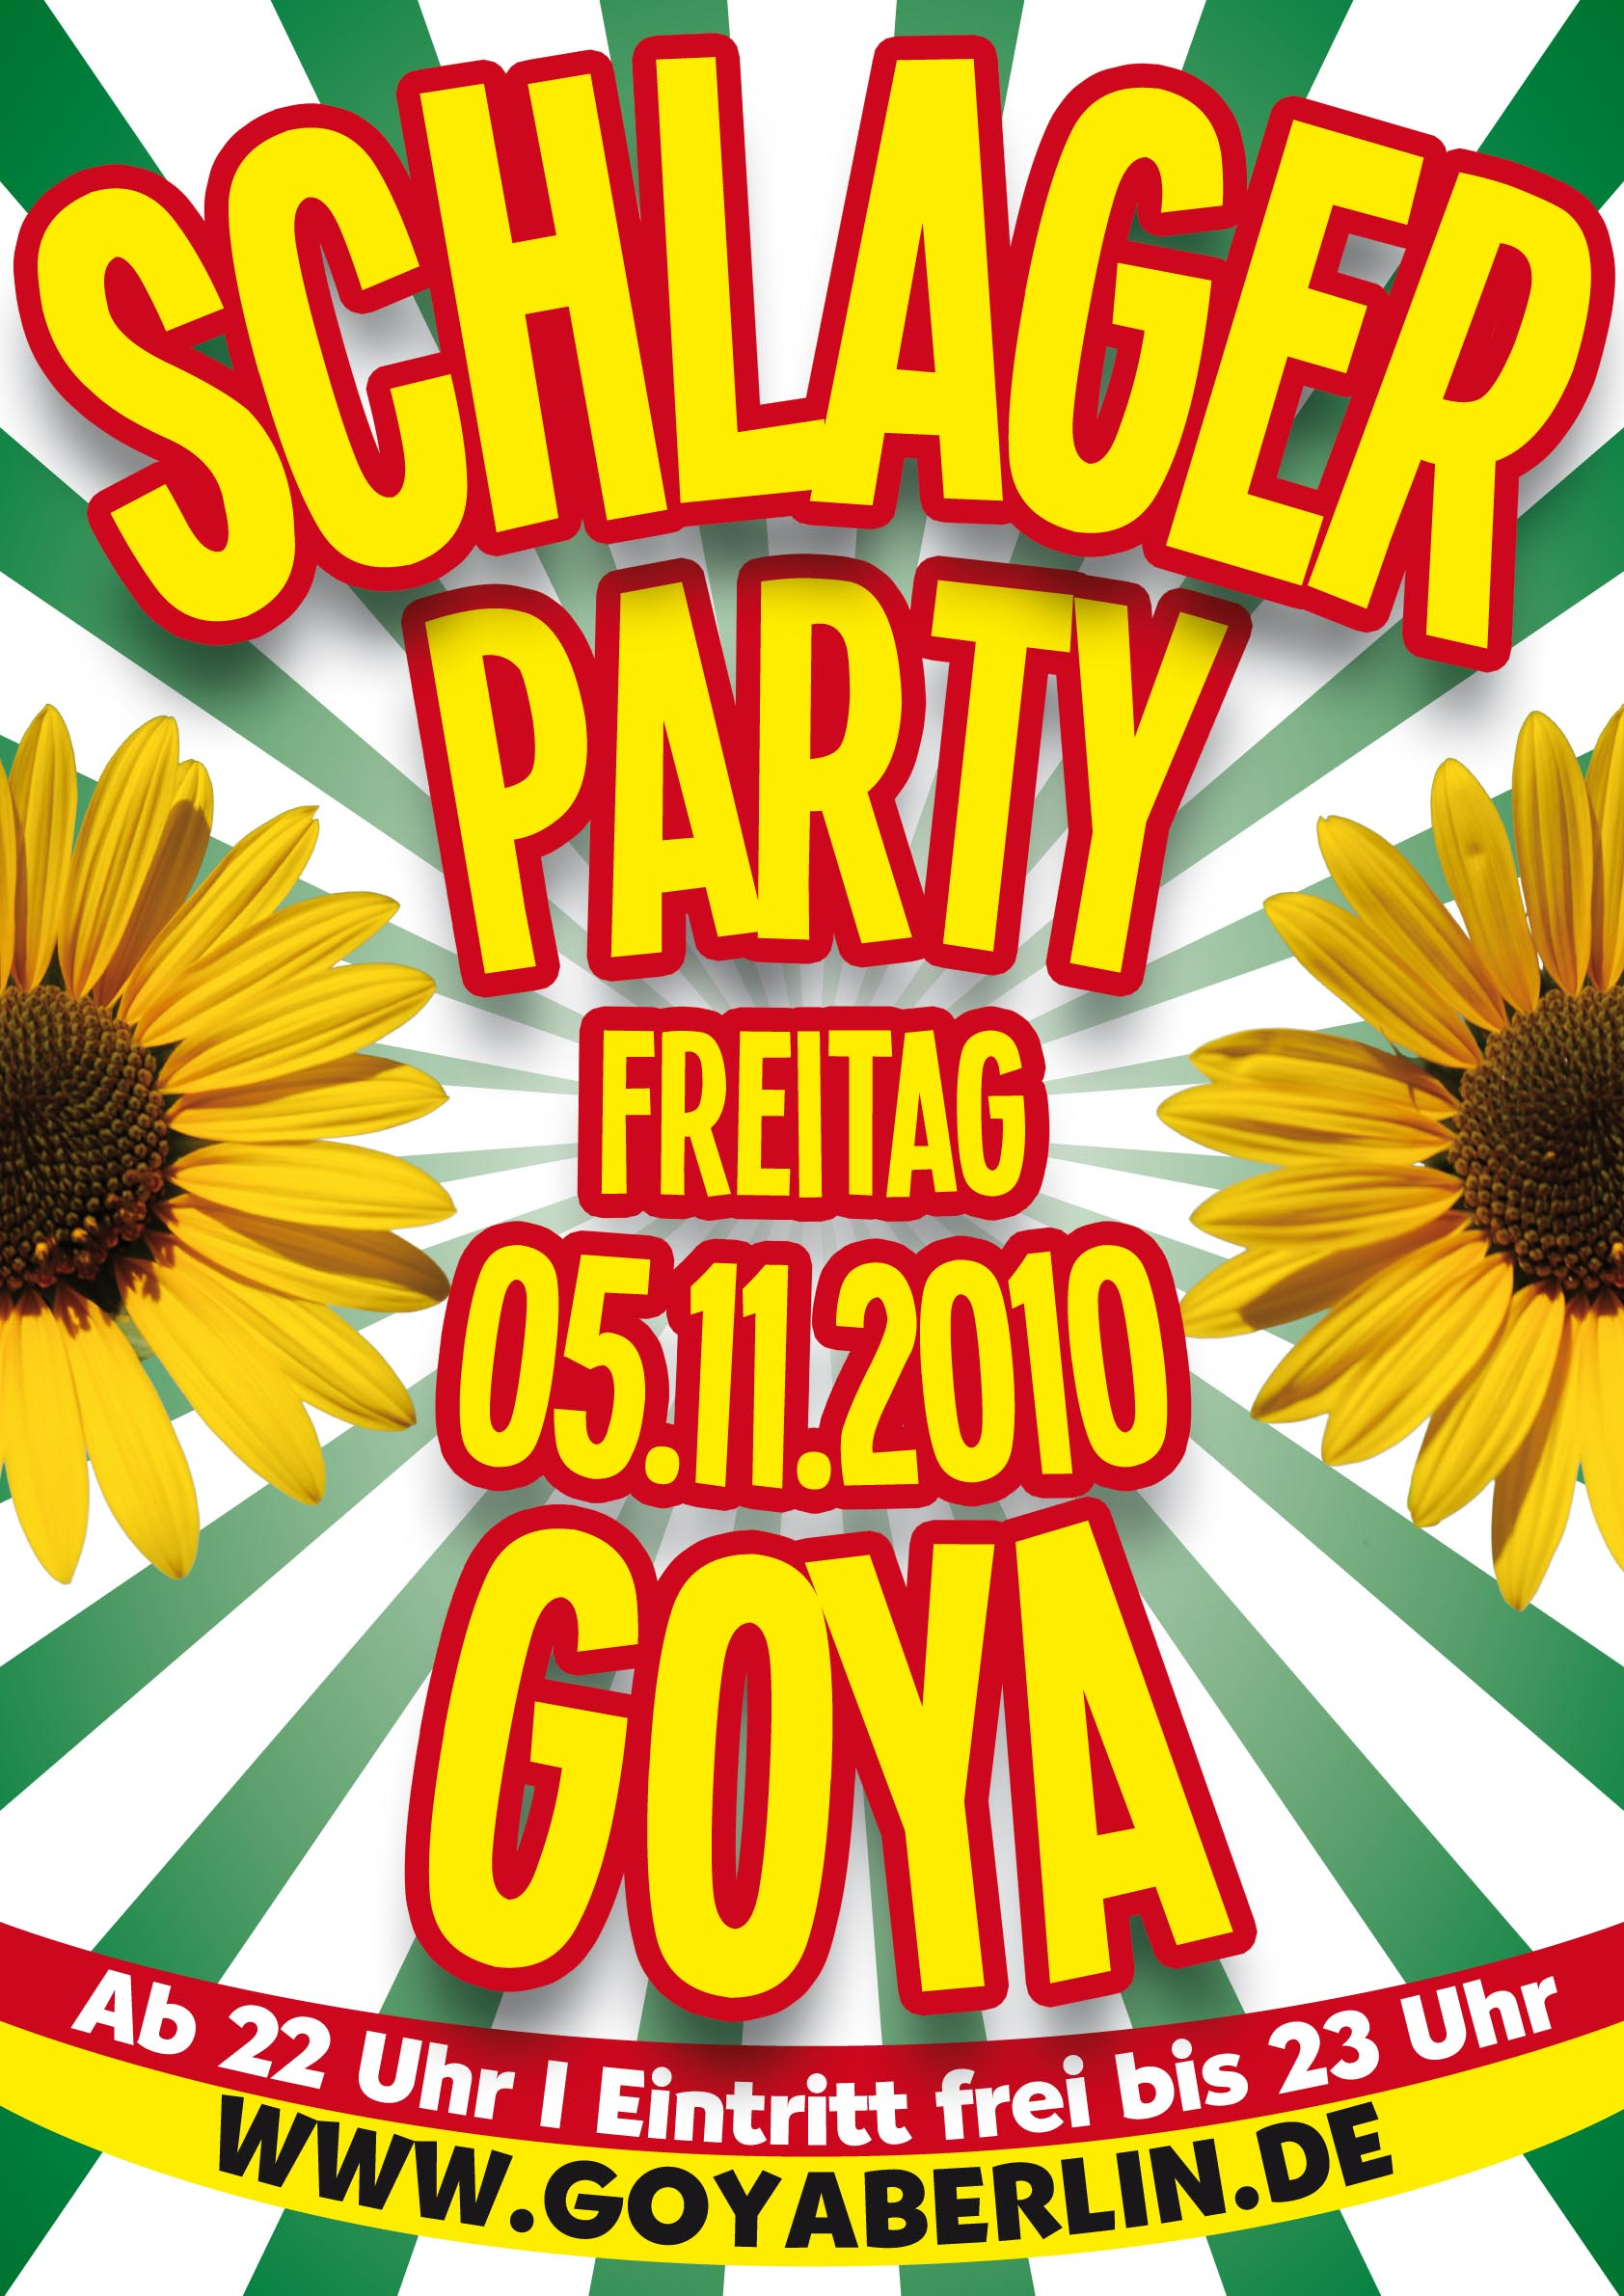 Single party berlin goya